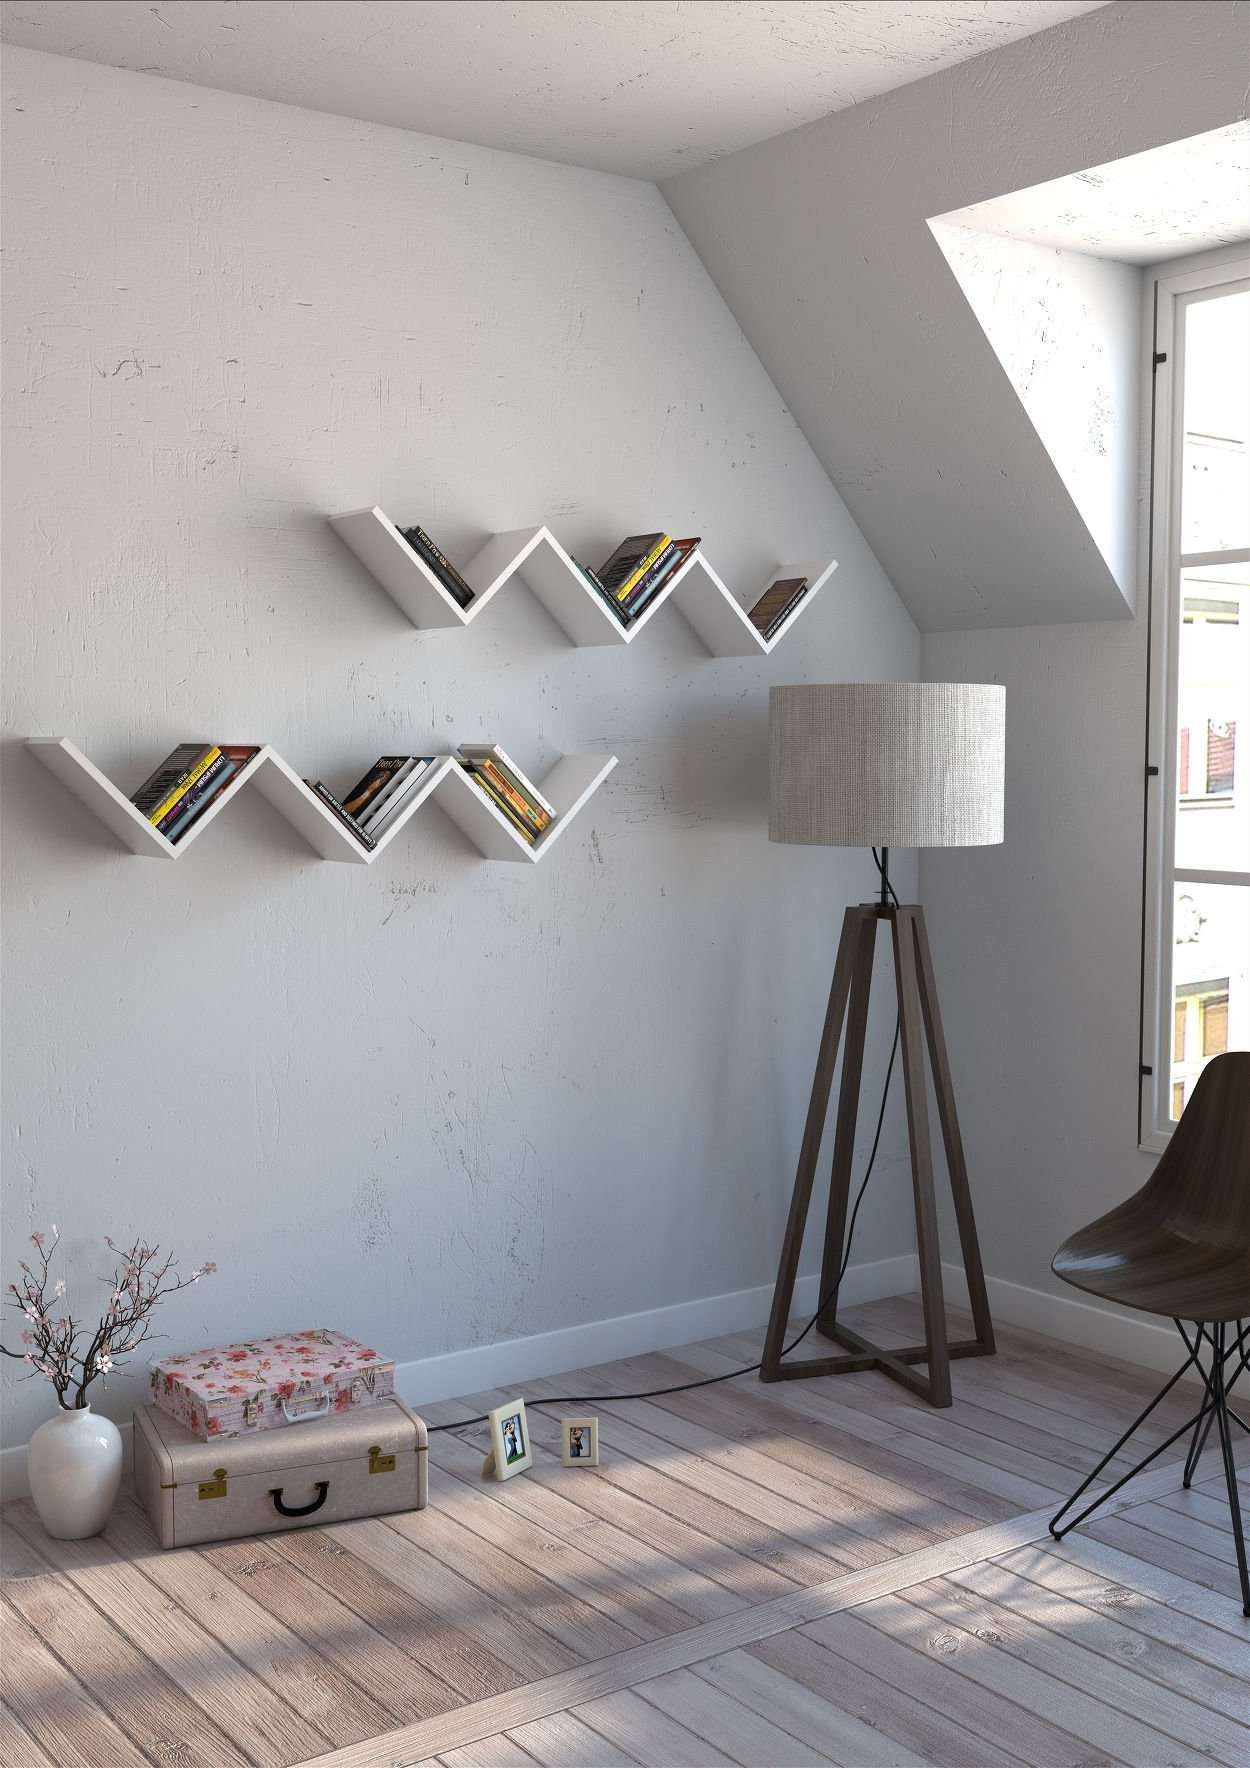 ZigZag Wall Shelf, 100% Melamine Coated Particle Board - White Wavy Shaped, Zig Zag - Size (50.6'' x 9.8'' x 7.9''), Easy to Hang with Invisible Brackets - Wall Mounted Floating Shelves for Home & Office